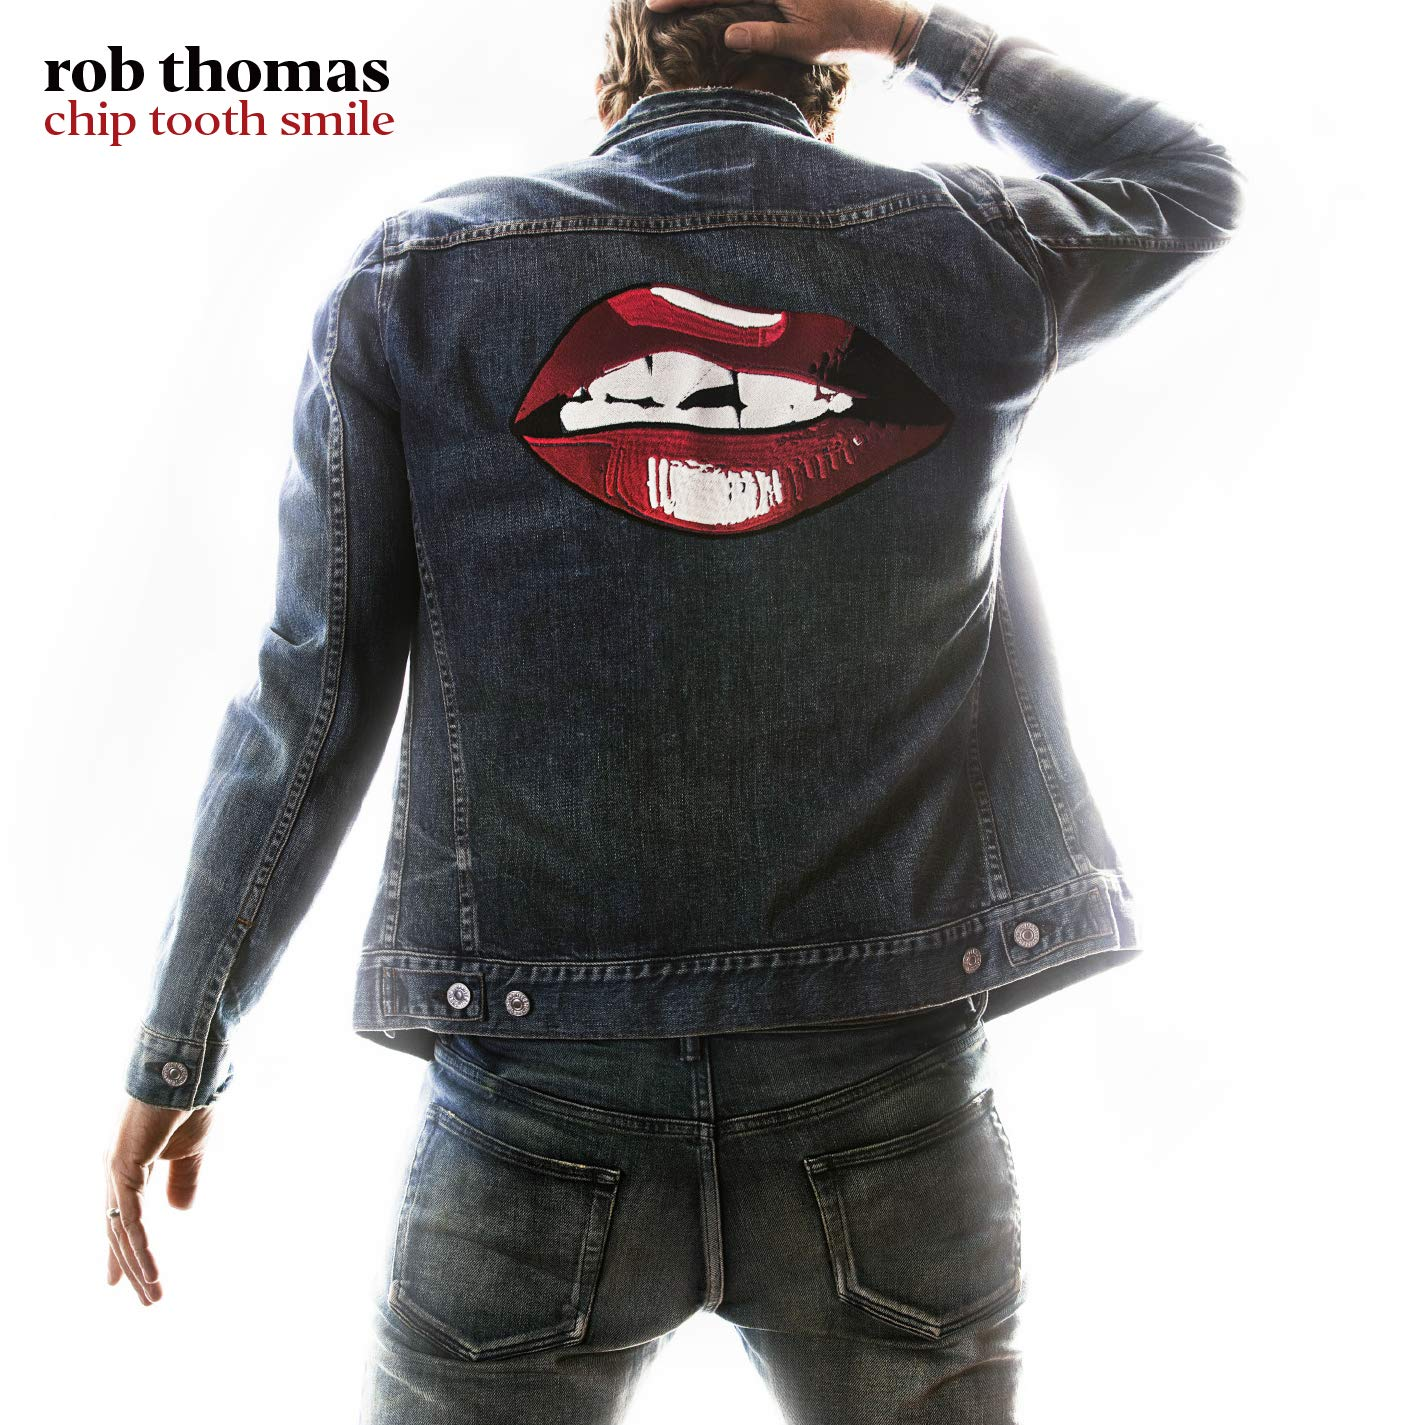 Rob Thomas - Chip Tooth Smile